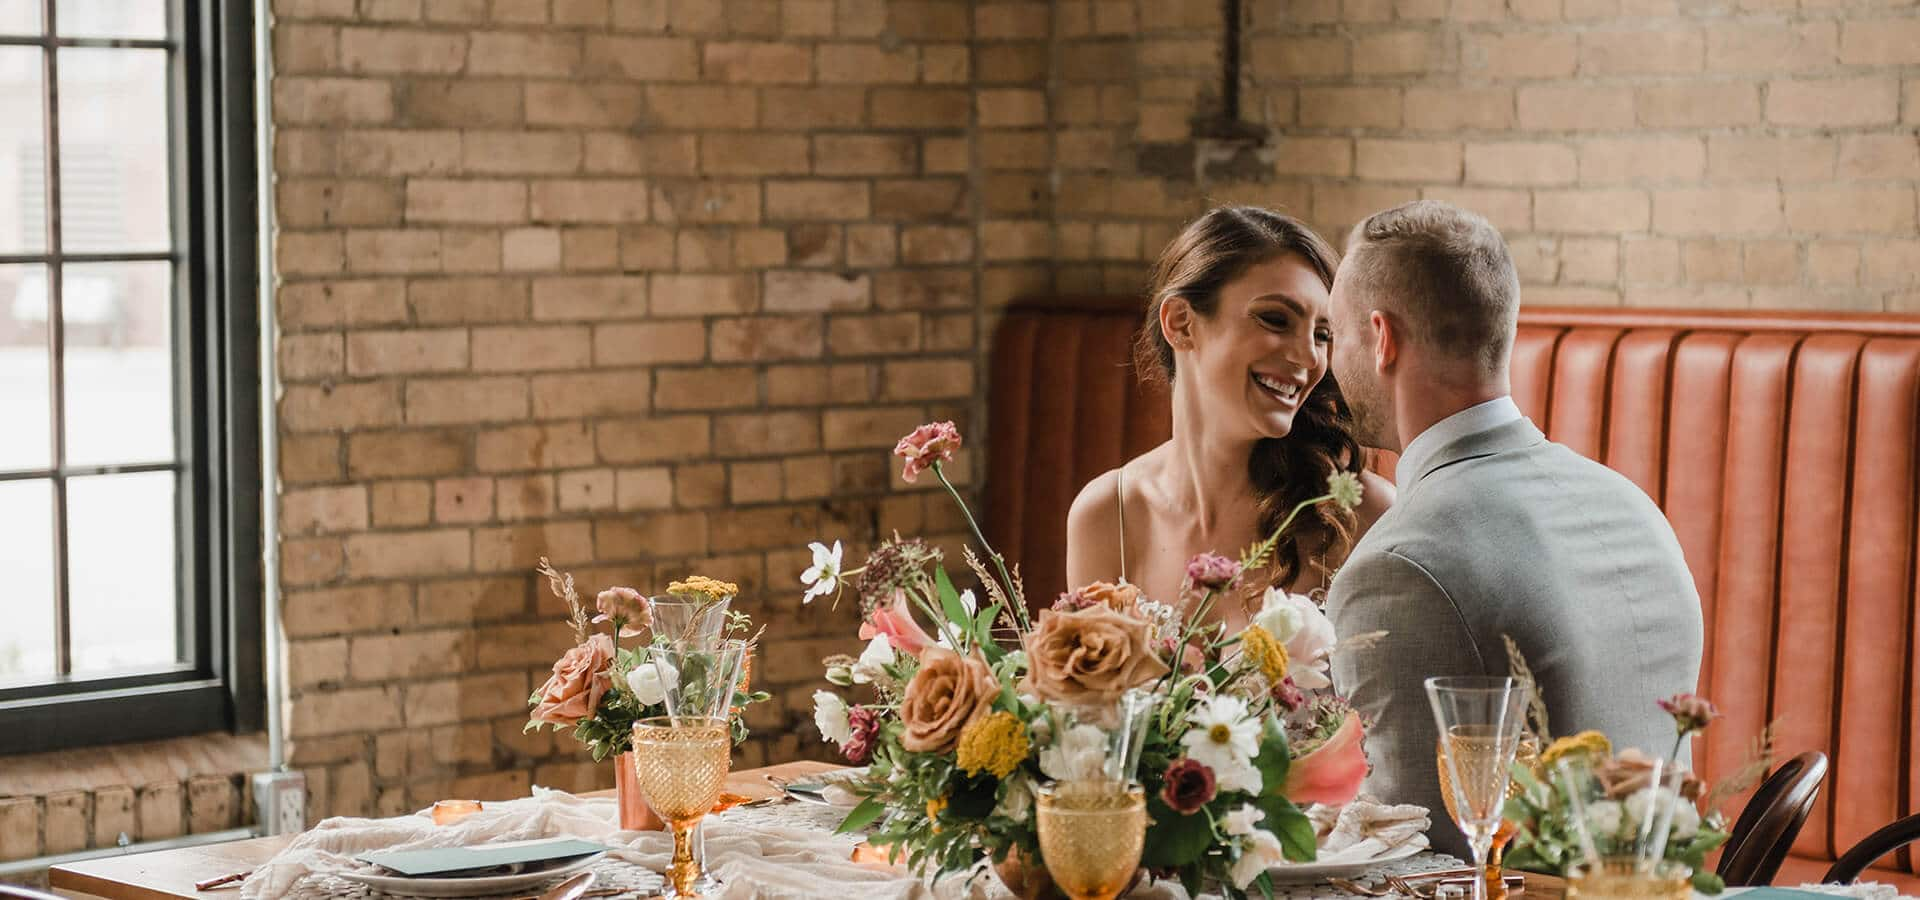 Hero image for A Rustic-Chic Style Shoot Turned Intimate Elopement at Balzac's Powerhouse